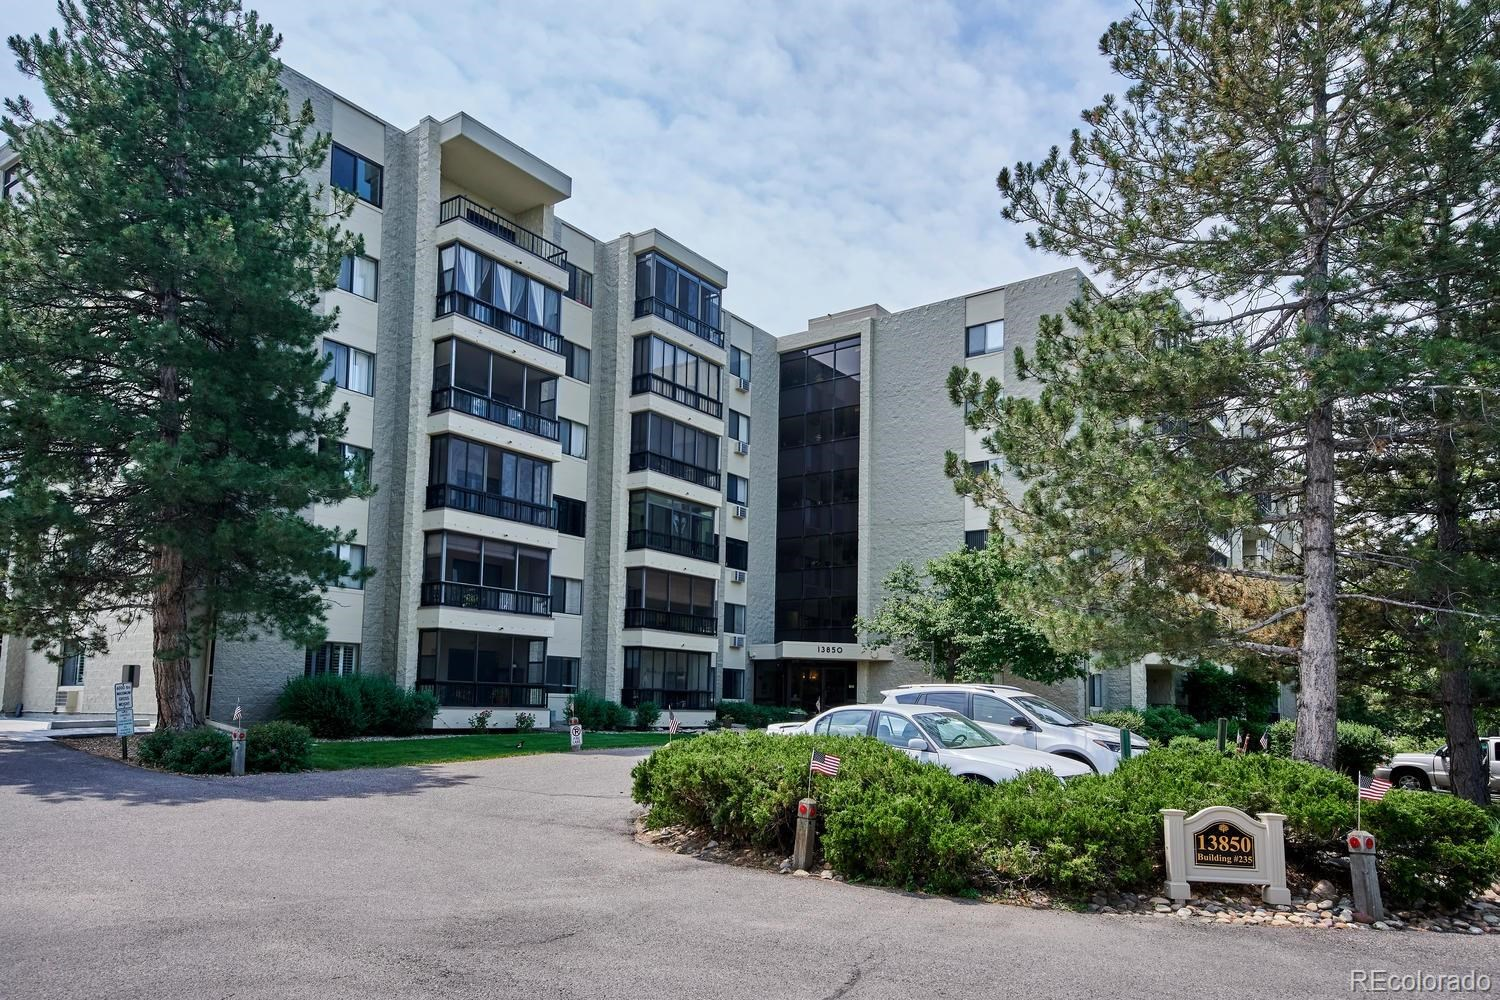 MLS# 4317500 - 1 - 13850 E Marina Drive #106, Aurora, CO 80014